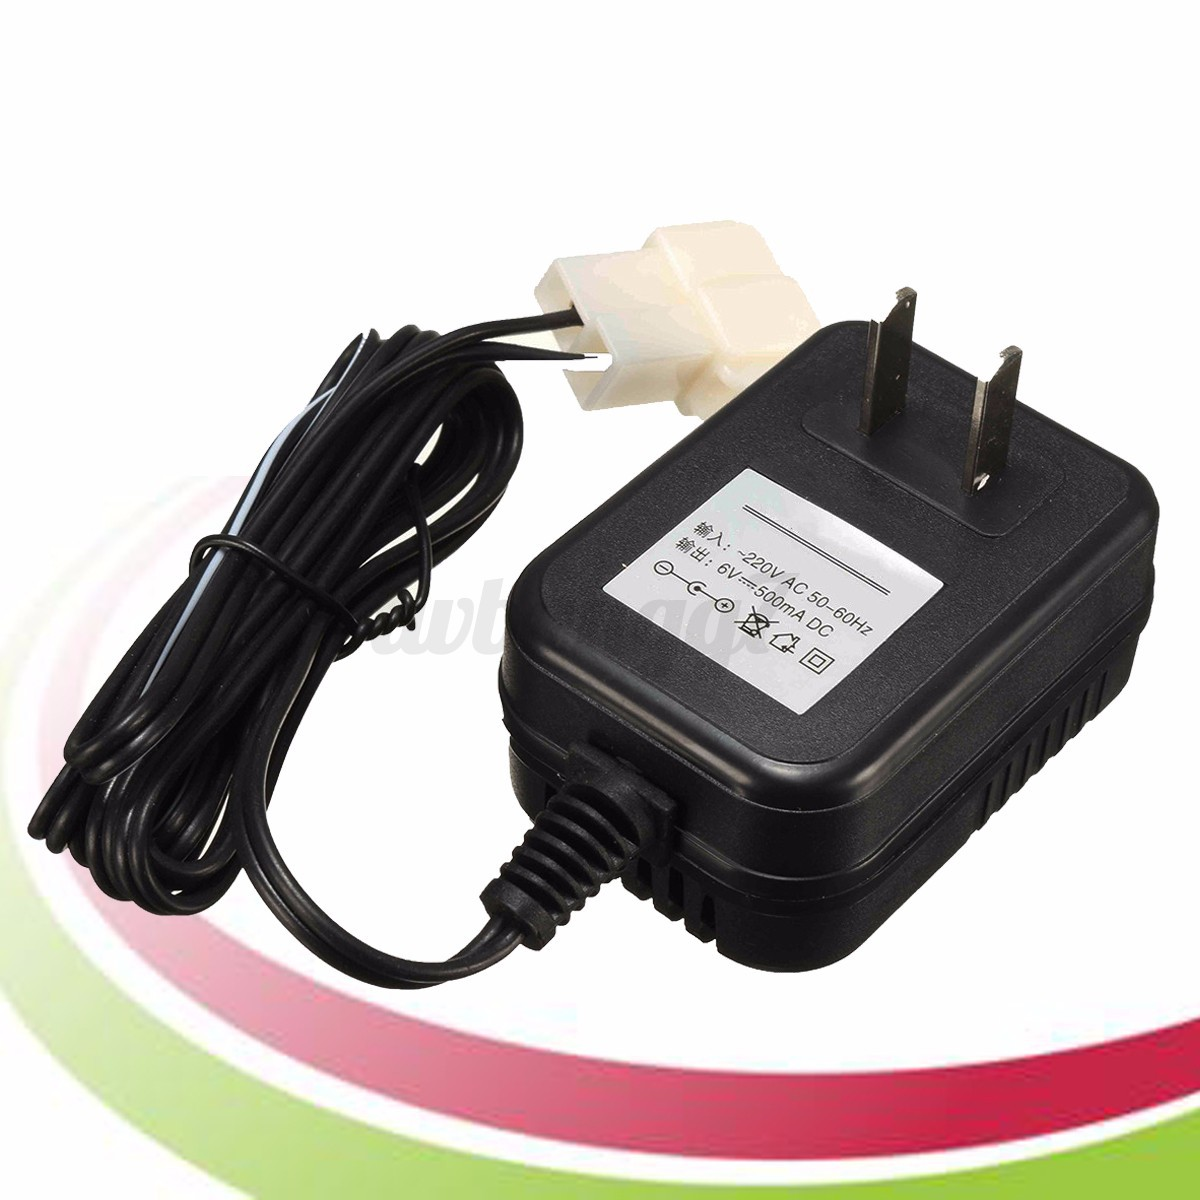 6v wall charger ac adapter for battery powered kid trax atv quad ride on car new ebay